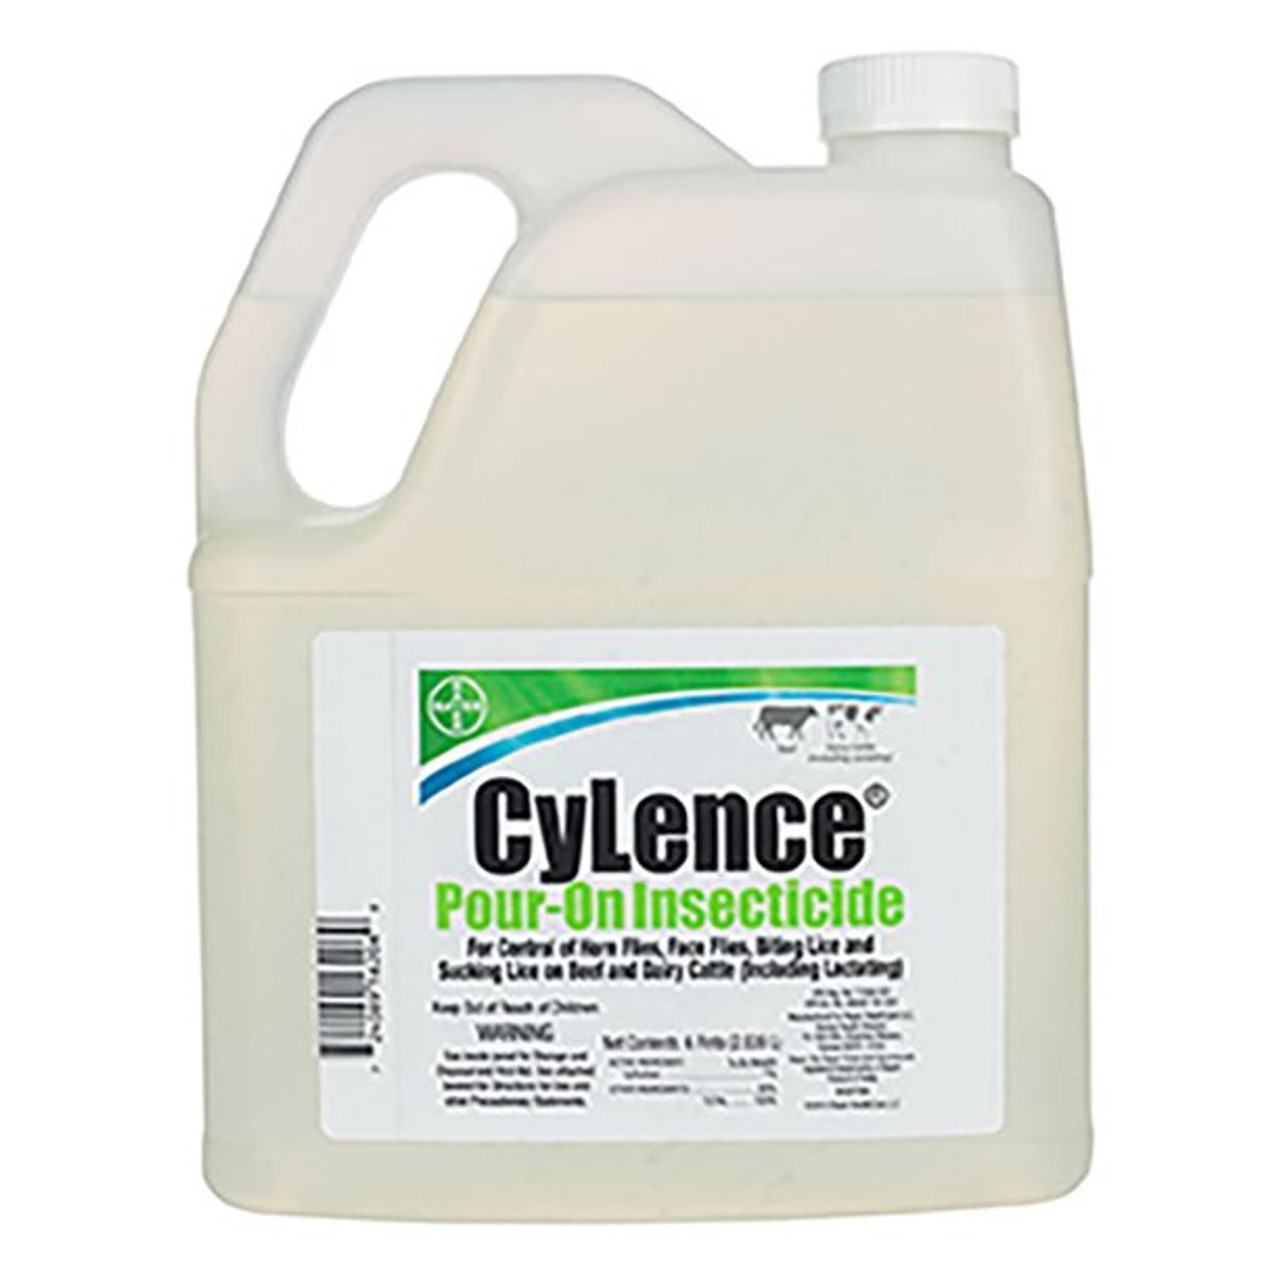 Cylence Pour On 6 Pint